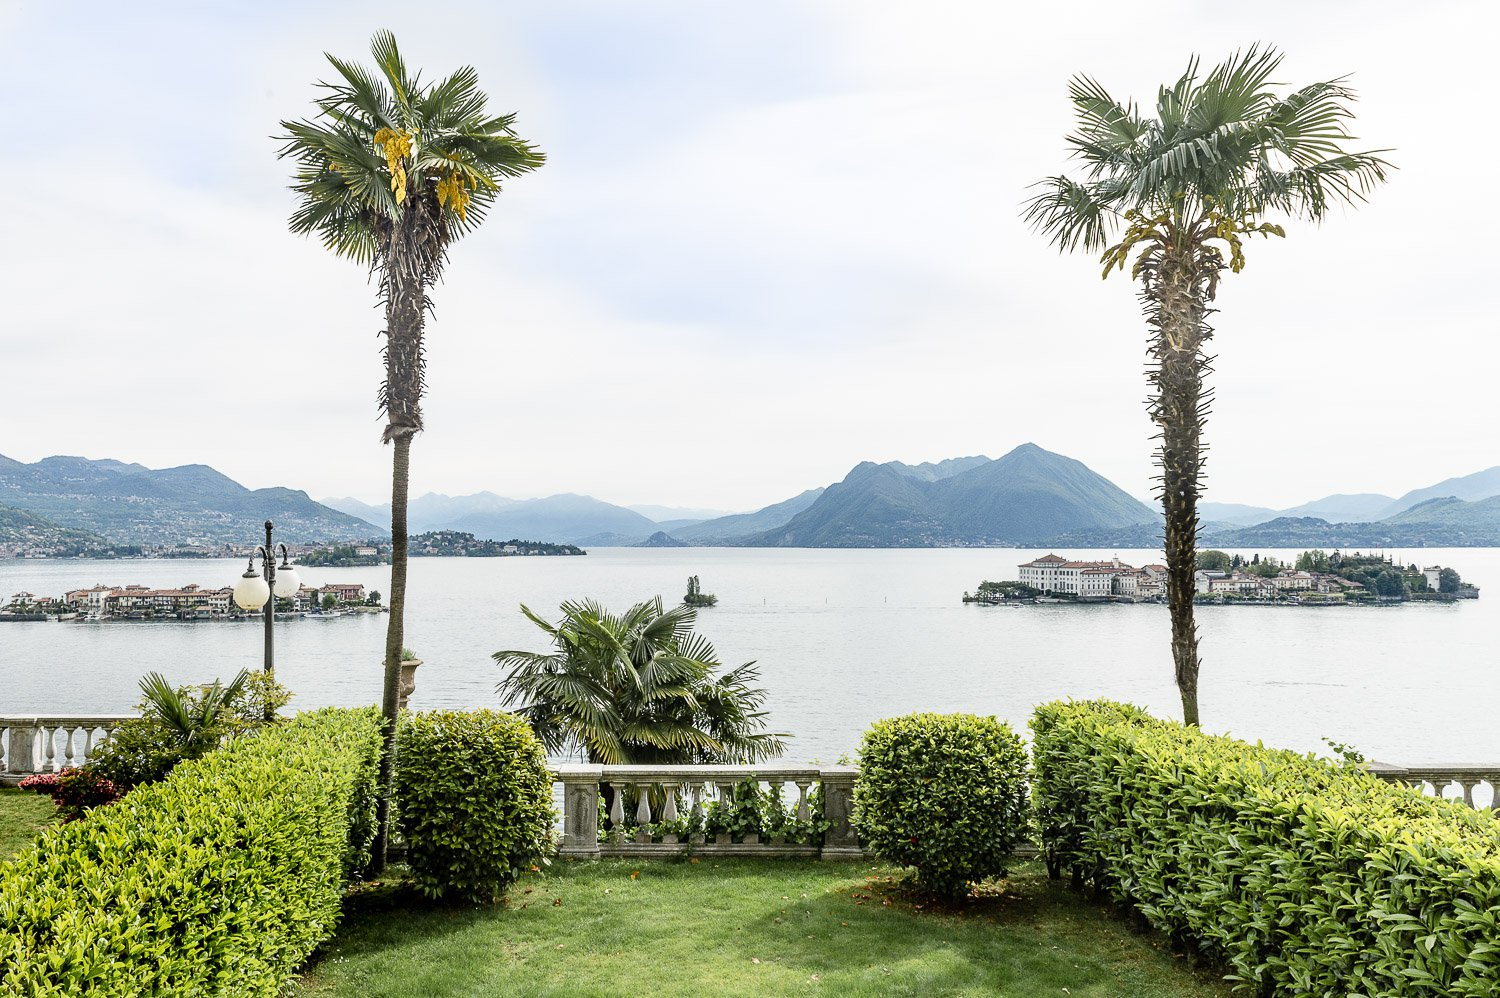 Apartment for sale in Baveno inside the historical Villa Barberis